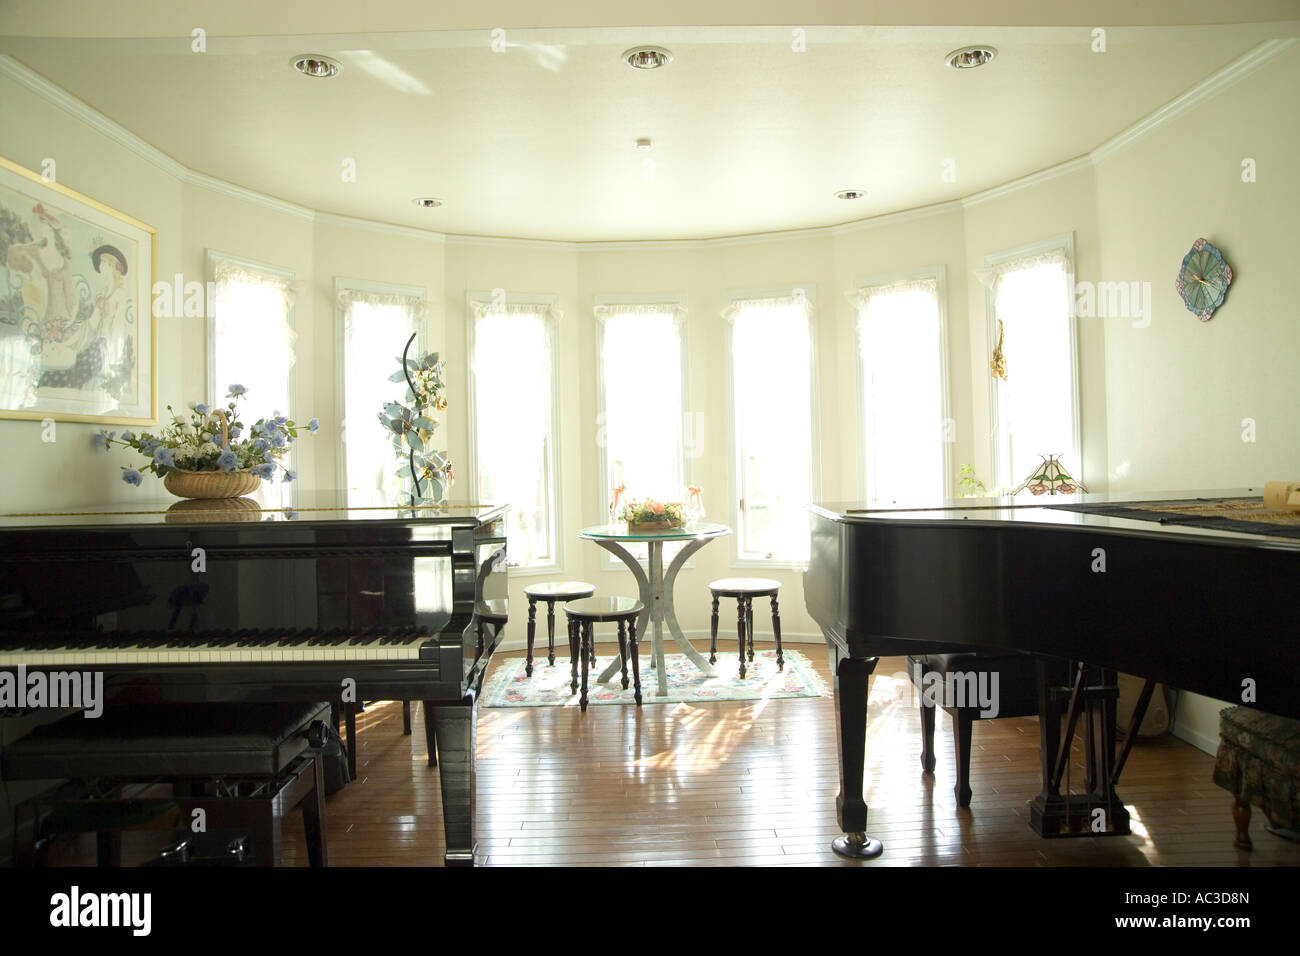 Two grand pianos in living room Stock Photo: 13028276 - Alamy